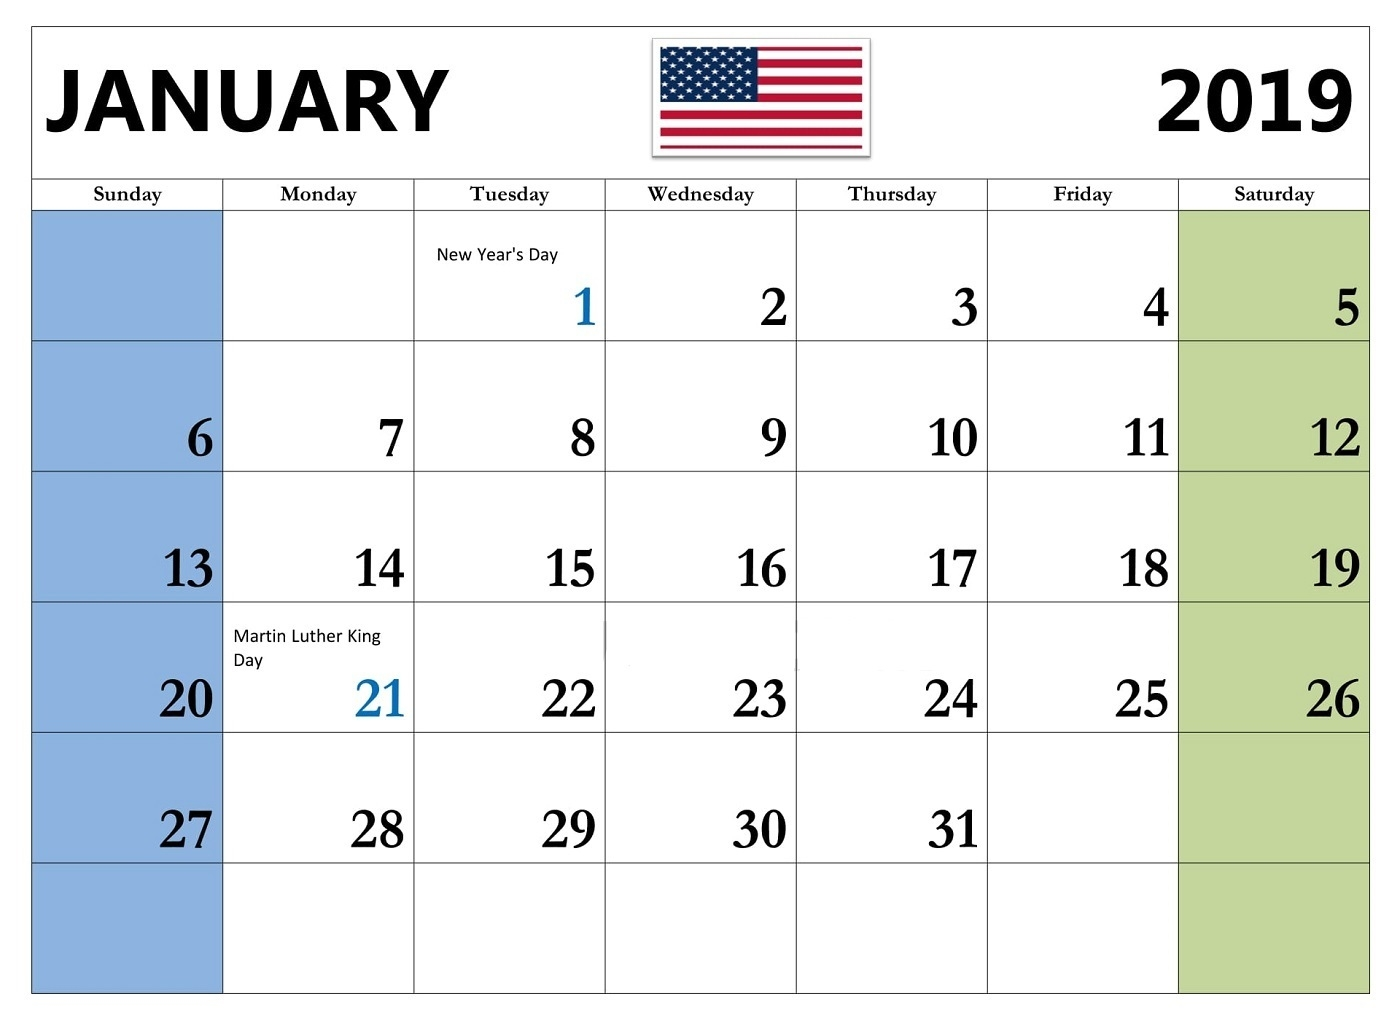 january 2019 calendar usa free printable word excel pdf::January 2019 Calendar USA